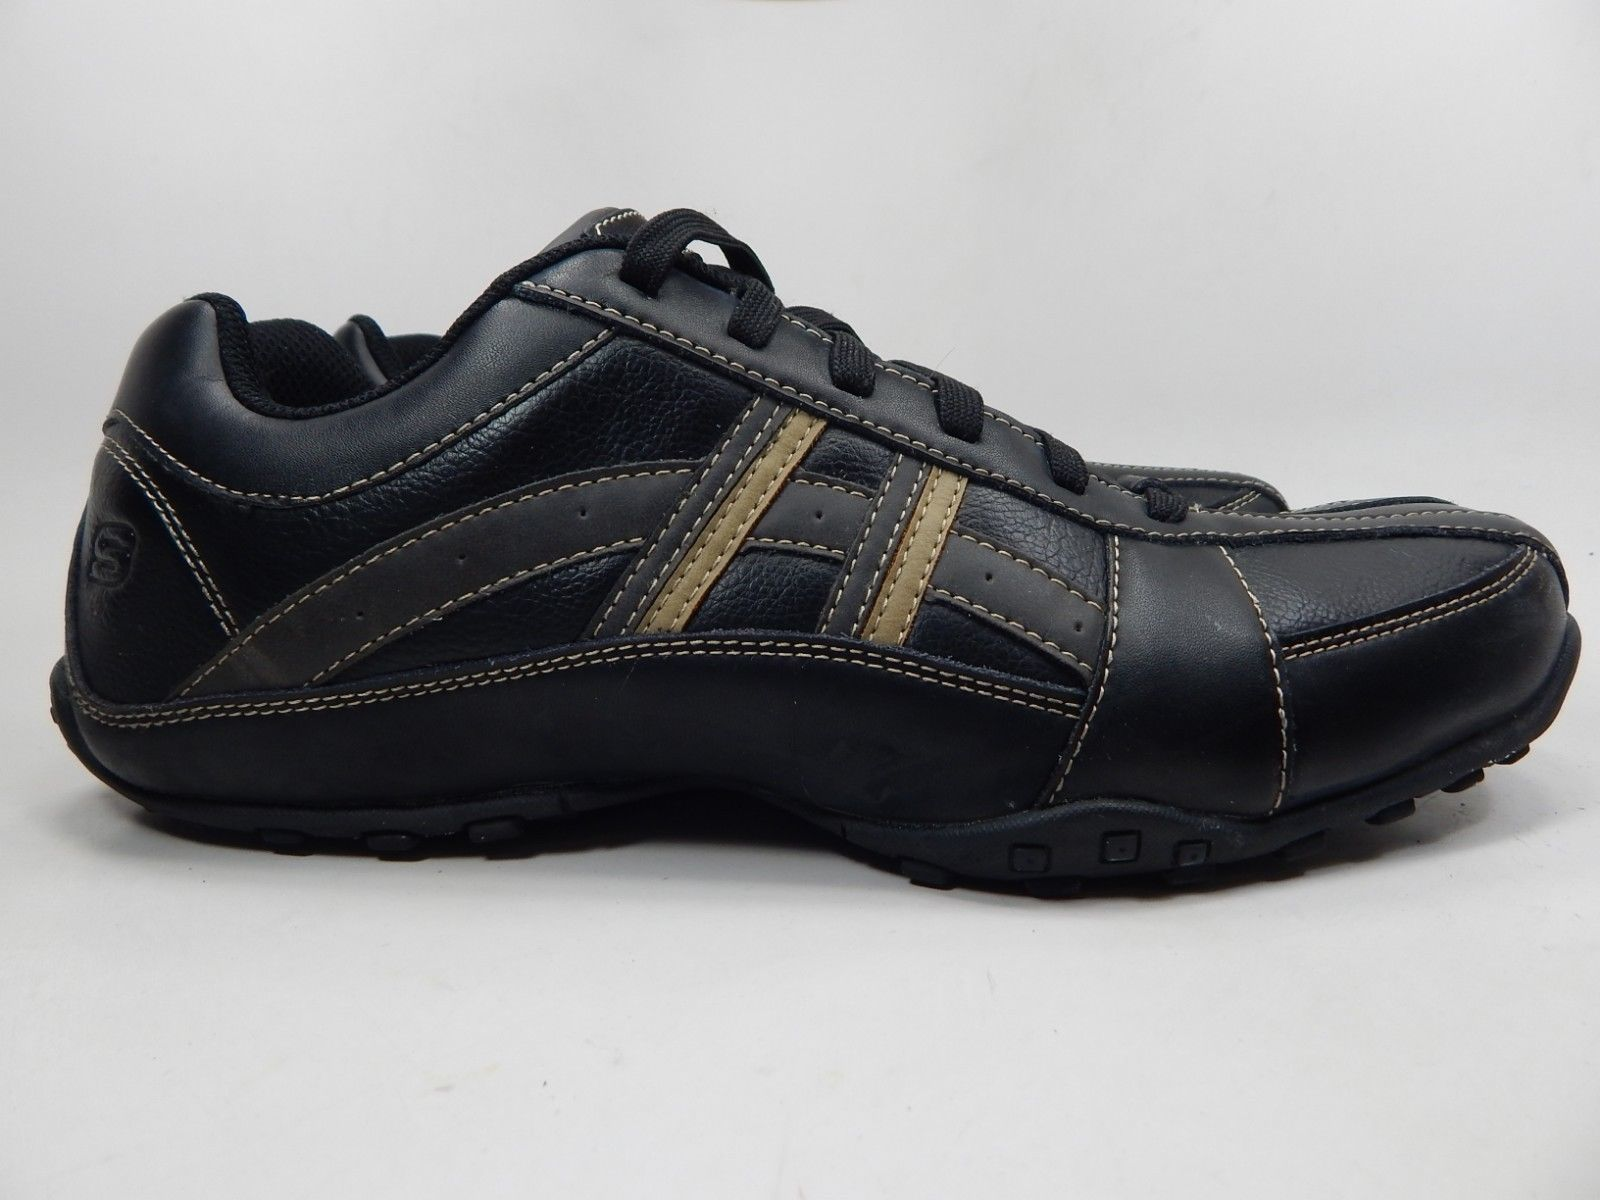 Skechers Citywalk Malton Size US 12 M (D) EU 46 Men's Casual Shoes Leather Black